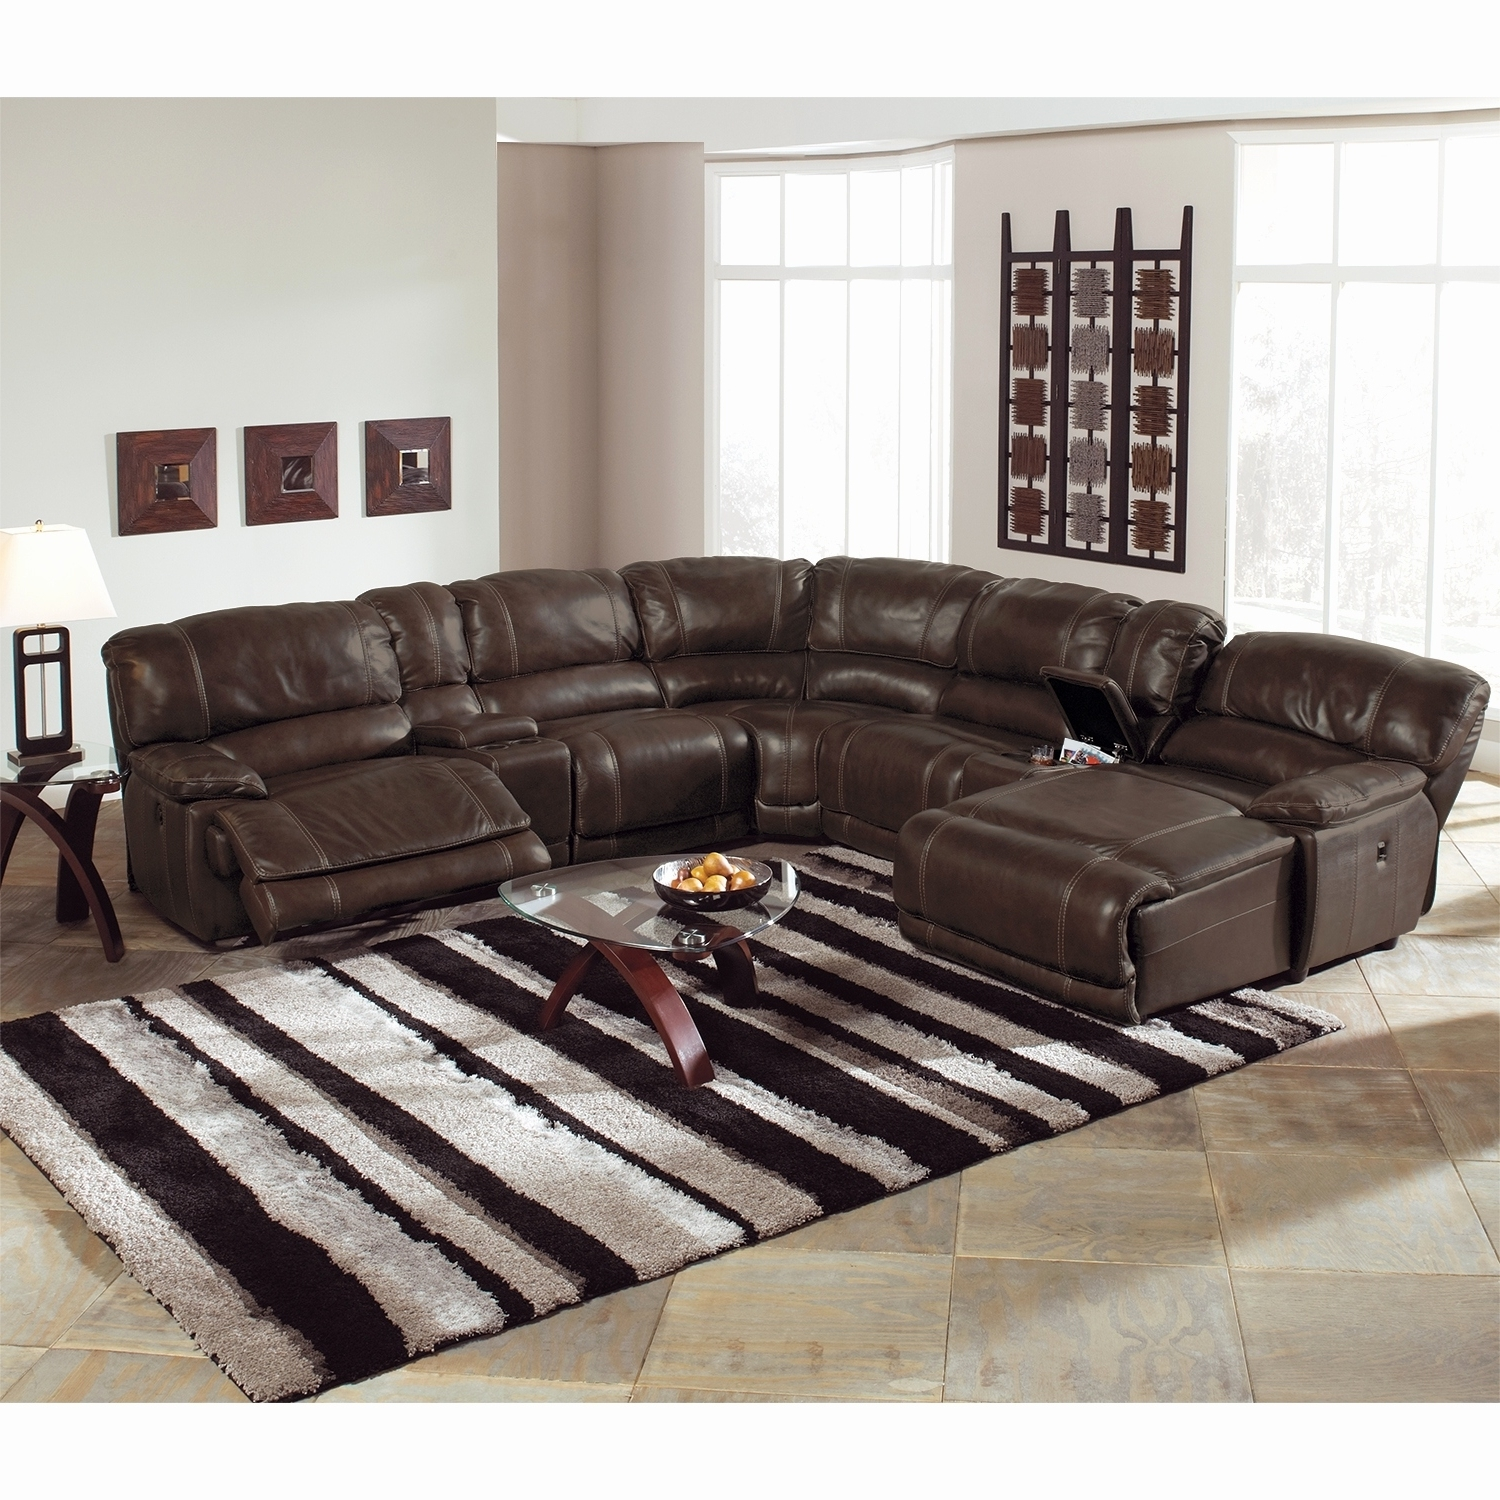 Widely Used 6 Piece Leather Sectional Sofas For Elegant Power Reclining Sectional Sofa 2018 – Couches And Sofas Ideas (View 15 of 15)